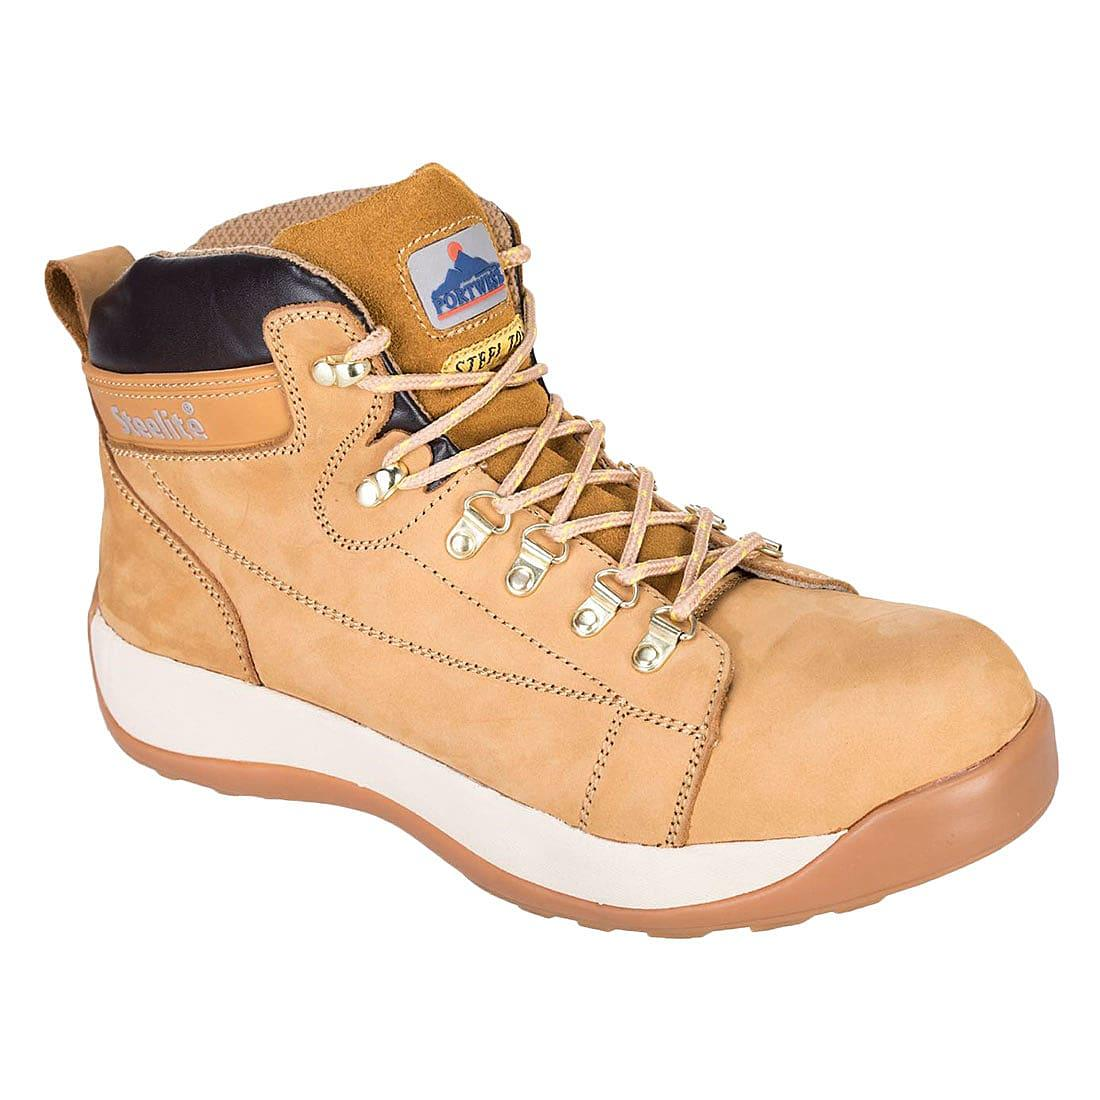 Portwest Steelite Mid Cut Nubuck Boots SB HRO in Honey (Product Code: FW31)